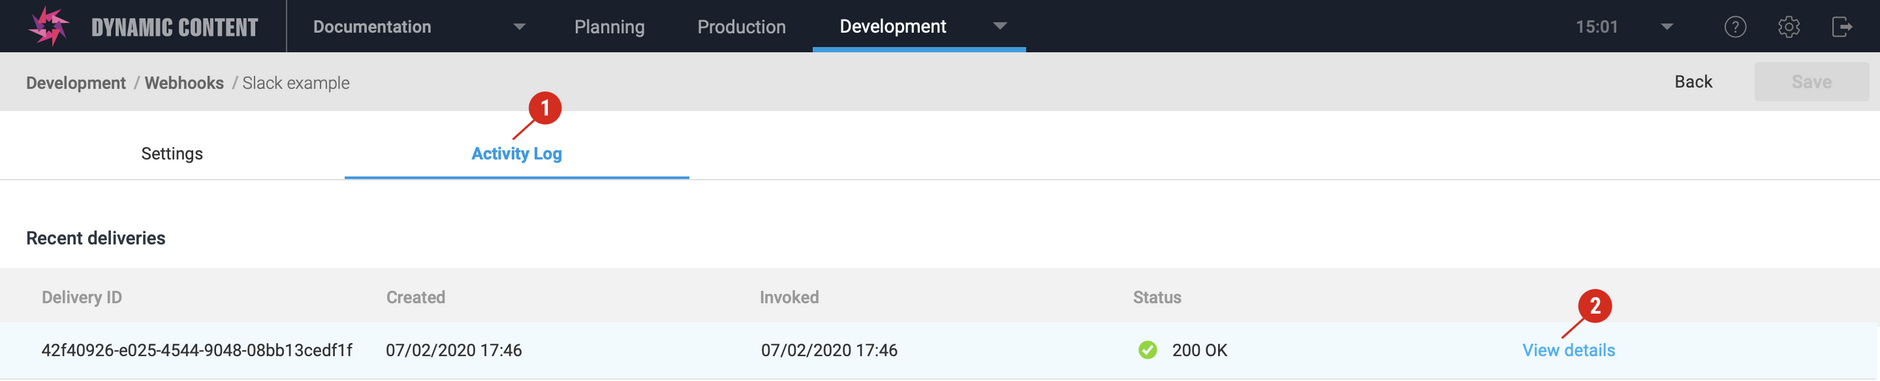 The Custom payload section shows the handlebars that was used to generate the payload for this invocation of the webhook request